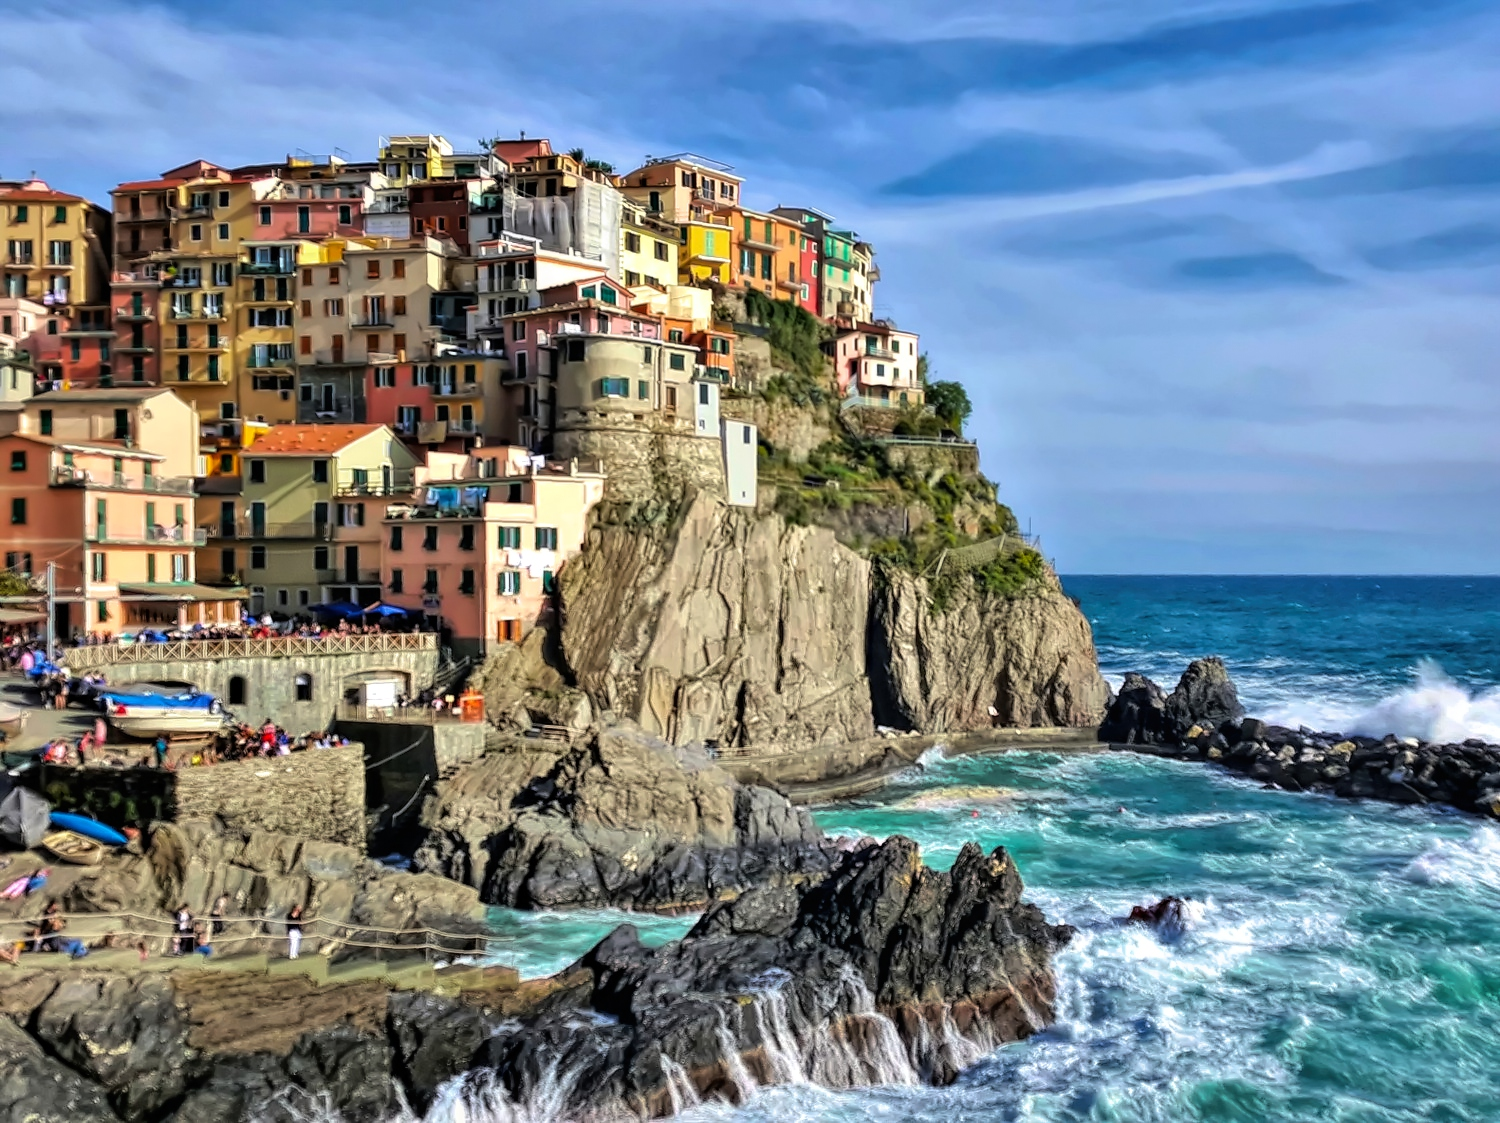 Cinque Terre - one of the most beautiful destinations in Italy.